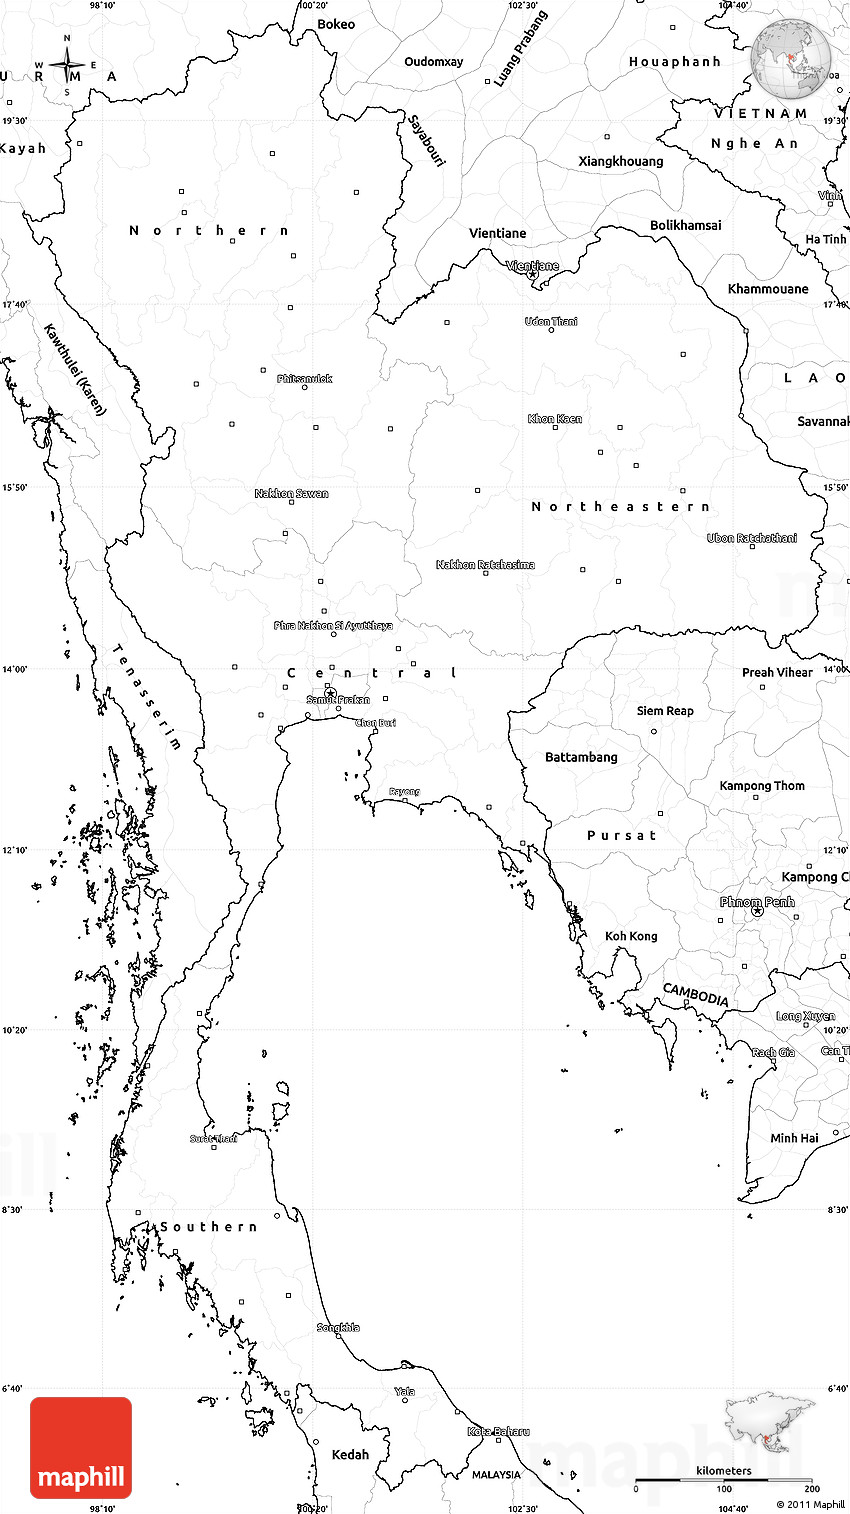 Blank Simple Map Of Thailand - Thailand blank map